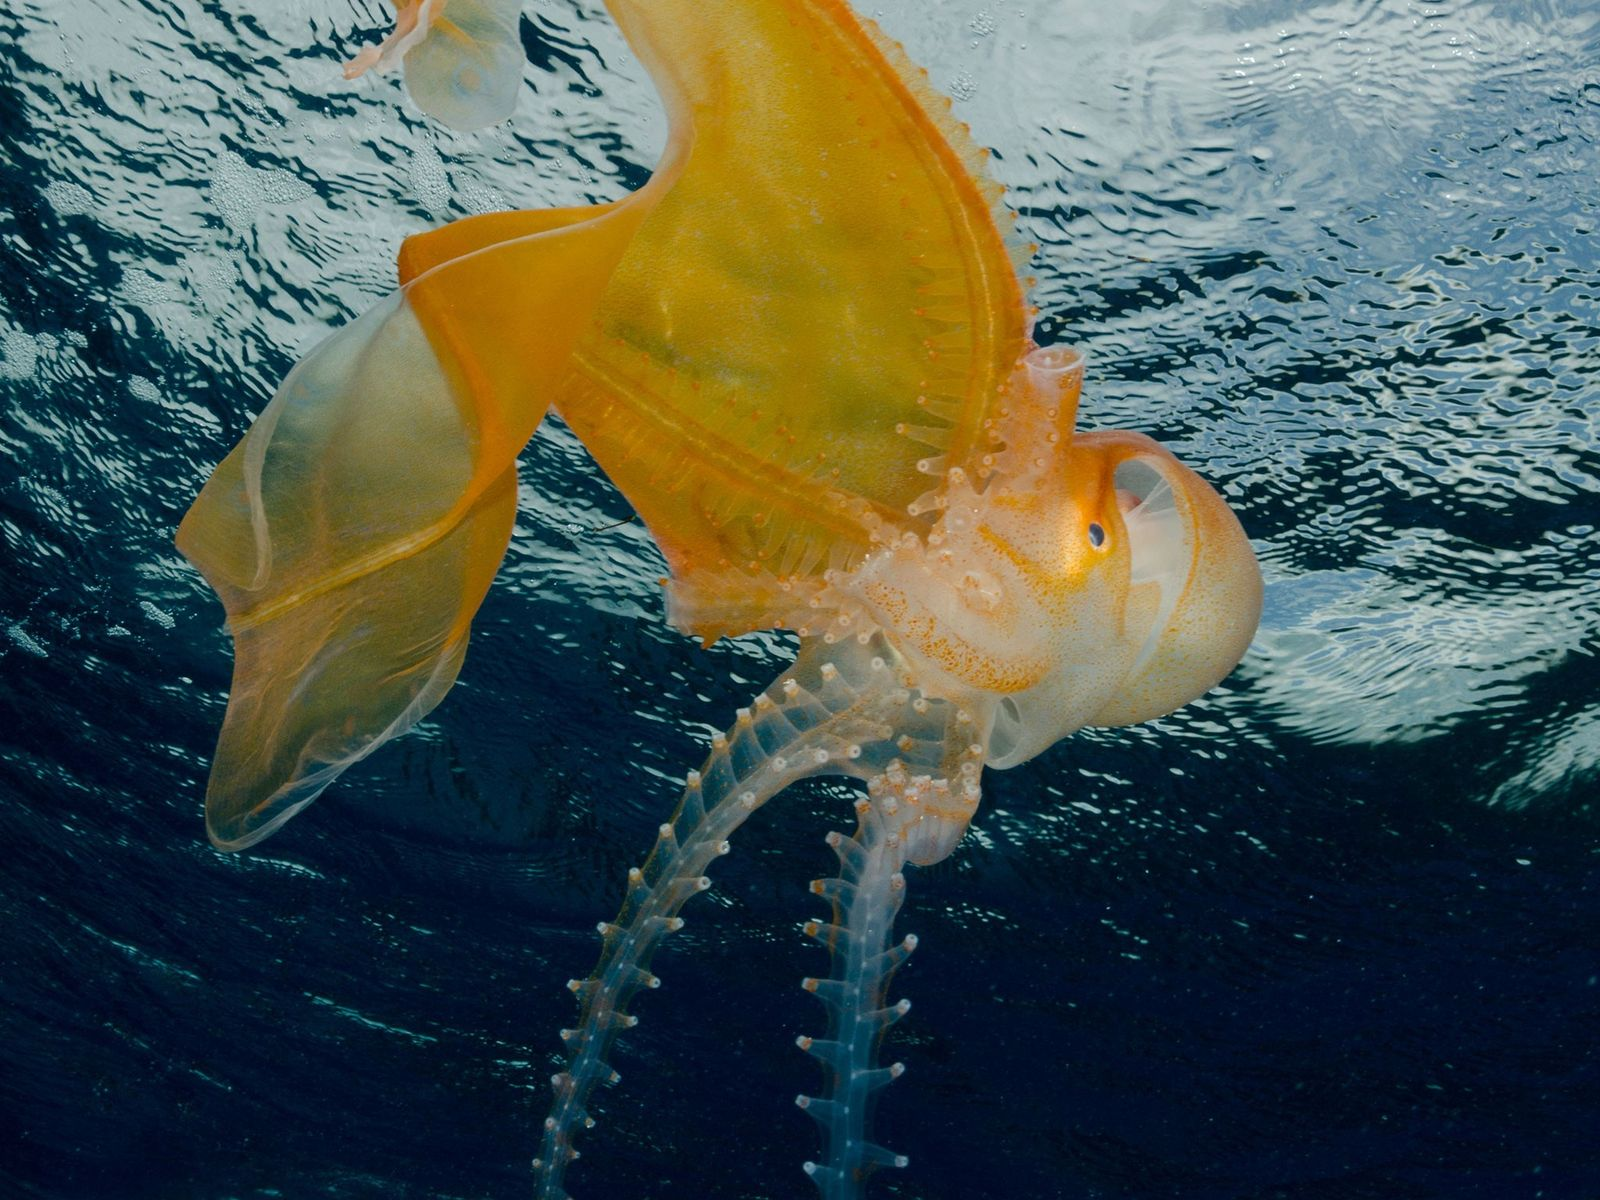 A female blanket octopus is dramatically larger than males, which put their energy into finding females ...